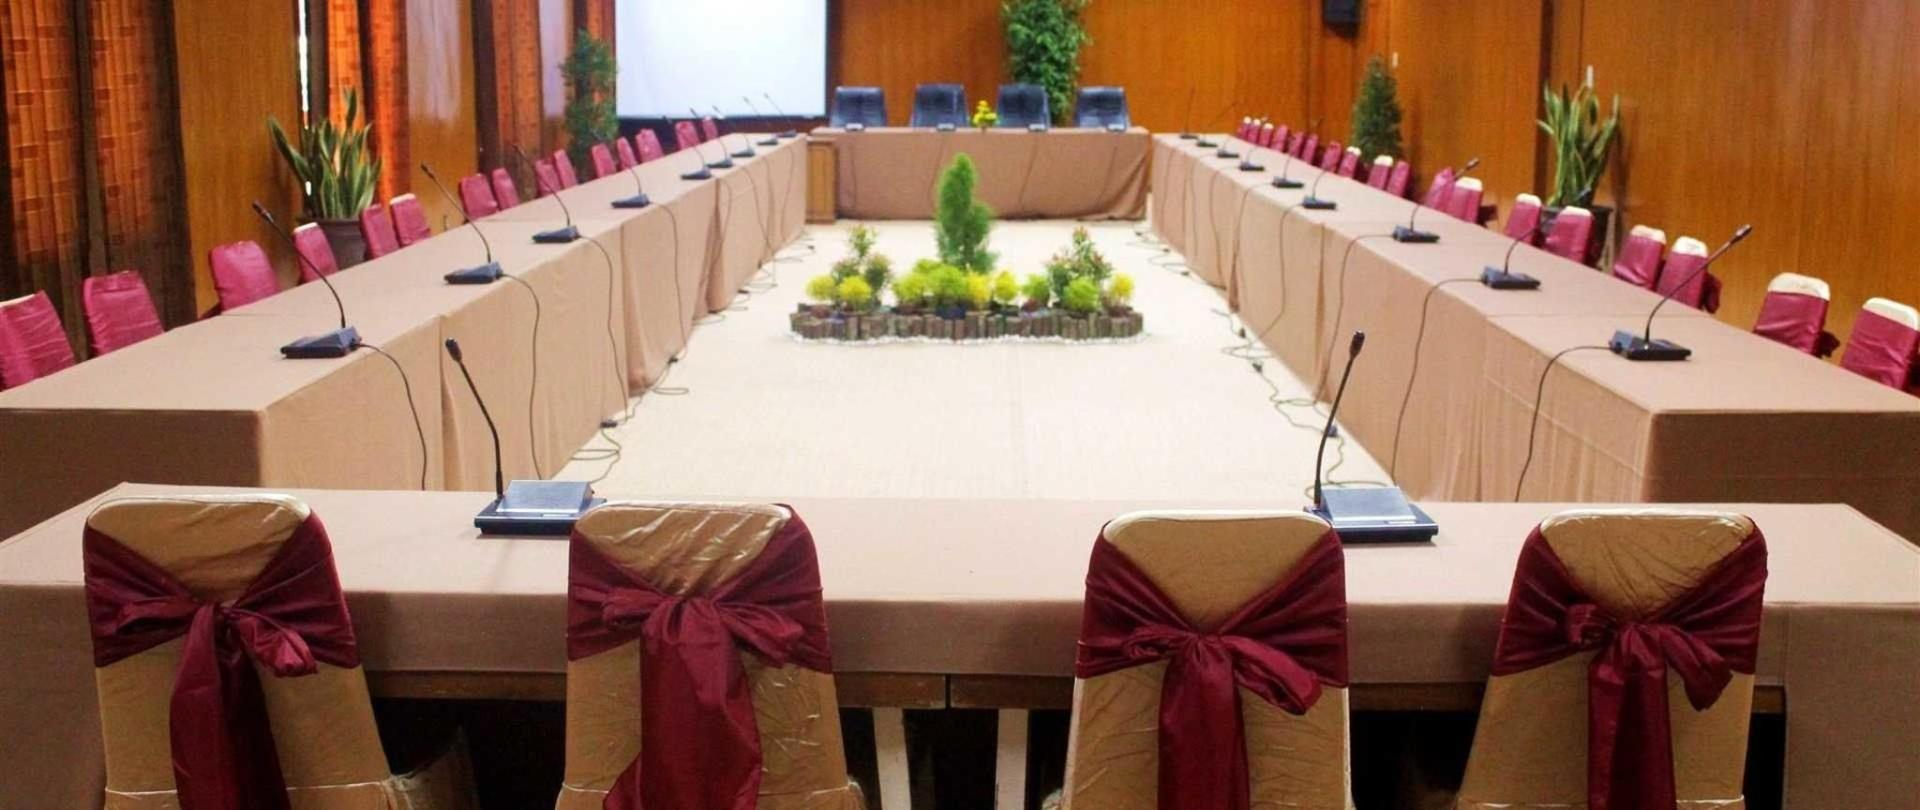 awadhana-meeting-room-2-jpg.jpeg